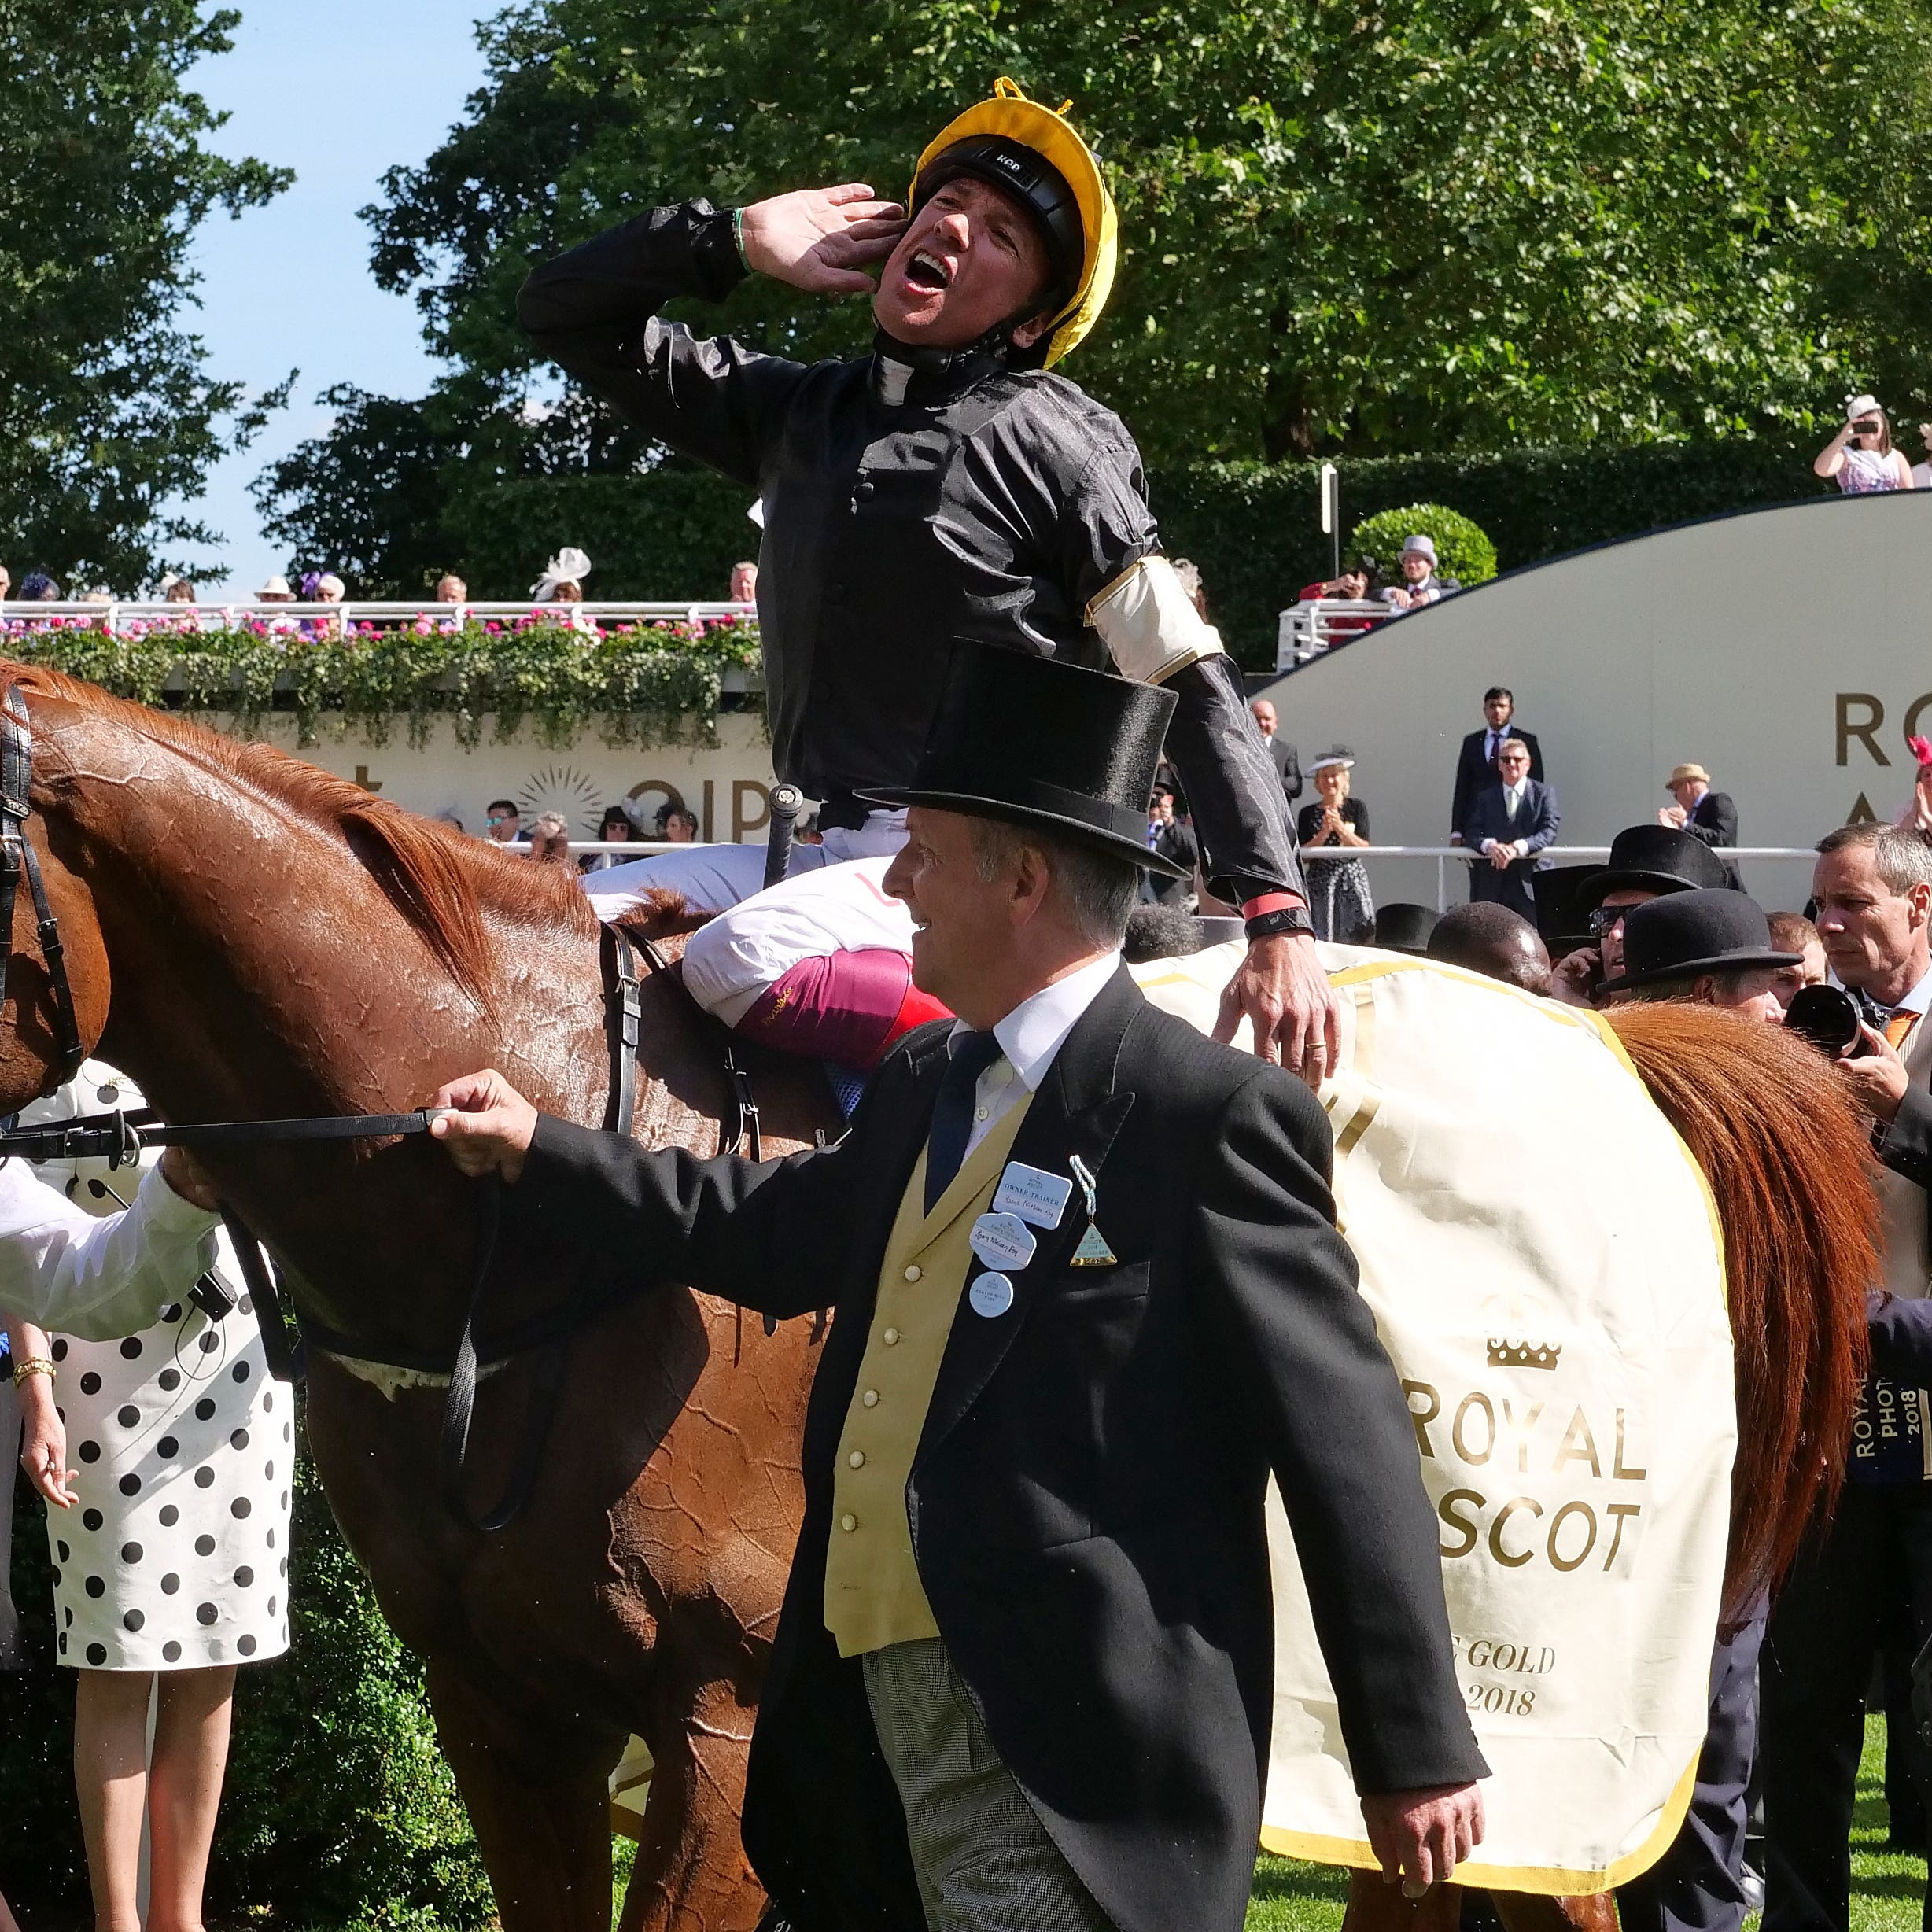 Jockey Frankie Dettori soaks up the applause as Stradivarius returns to the winner's enclosure following the Gold Cup at Royal Ascot